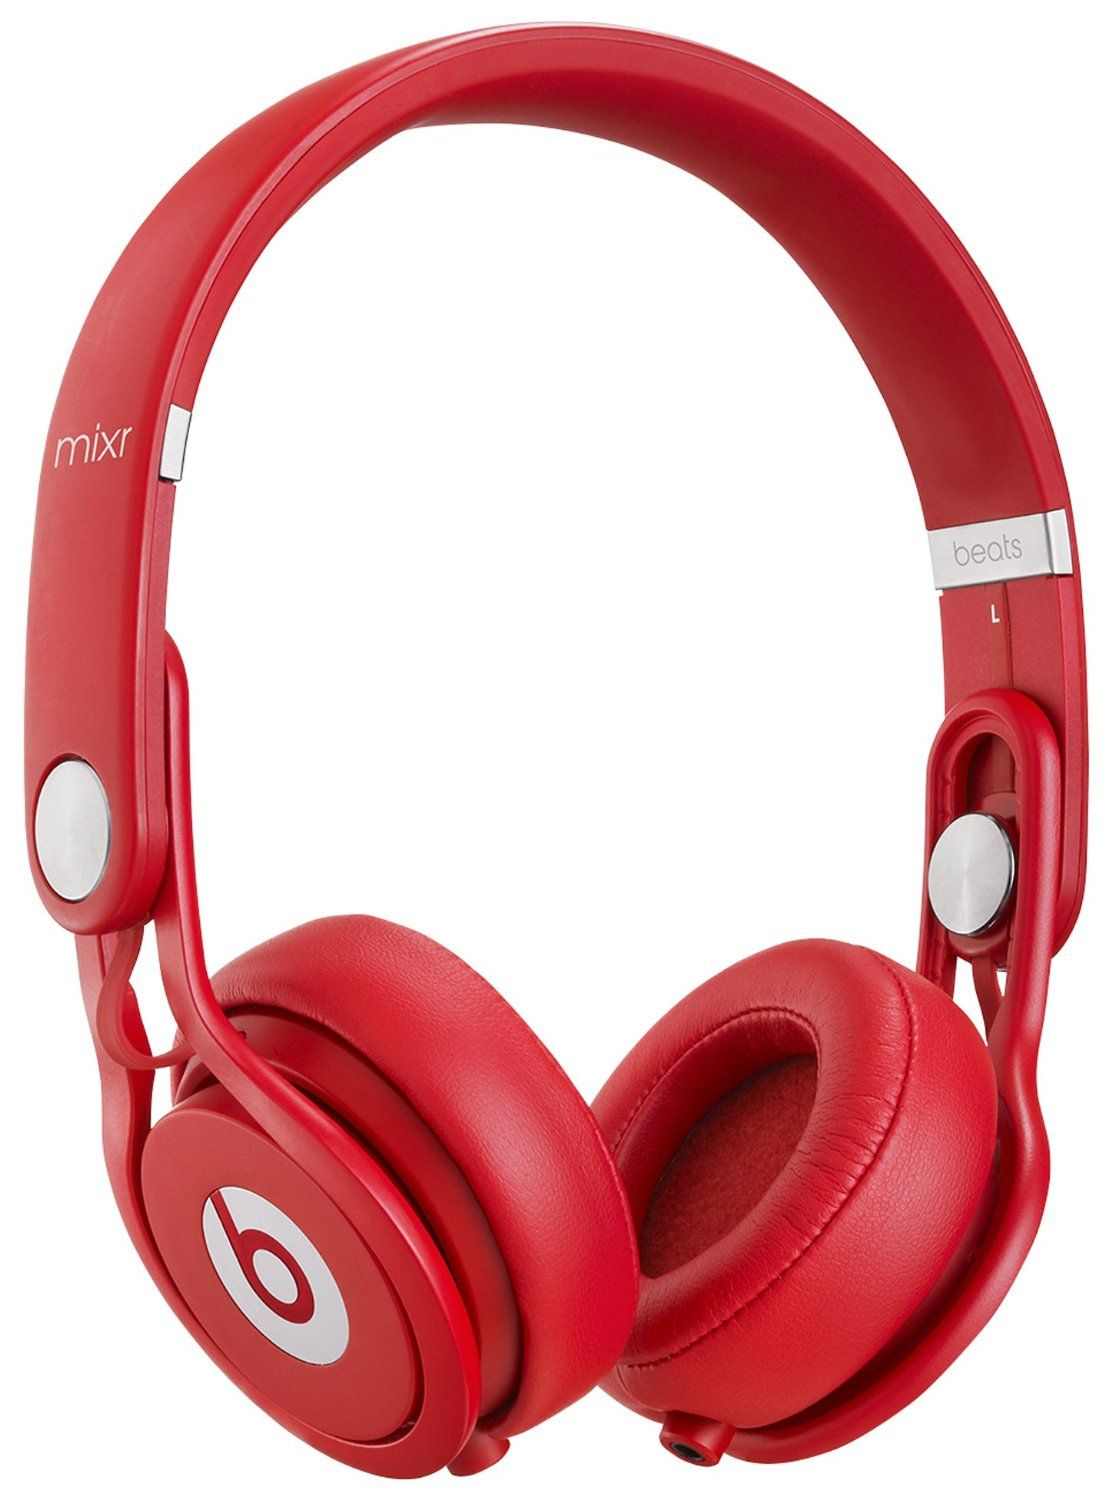 casque audio beats by dr dre mixr rouge 189 00 livr le moins cher rouge casque audio. Black Bedroom Furniture Sets. Home Design Ideas